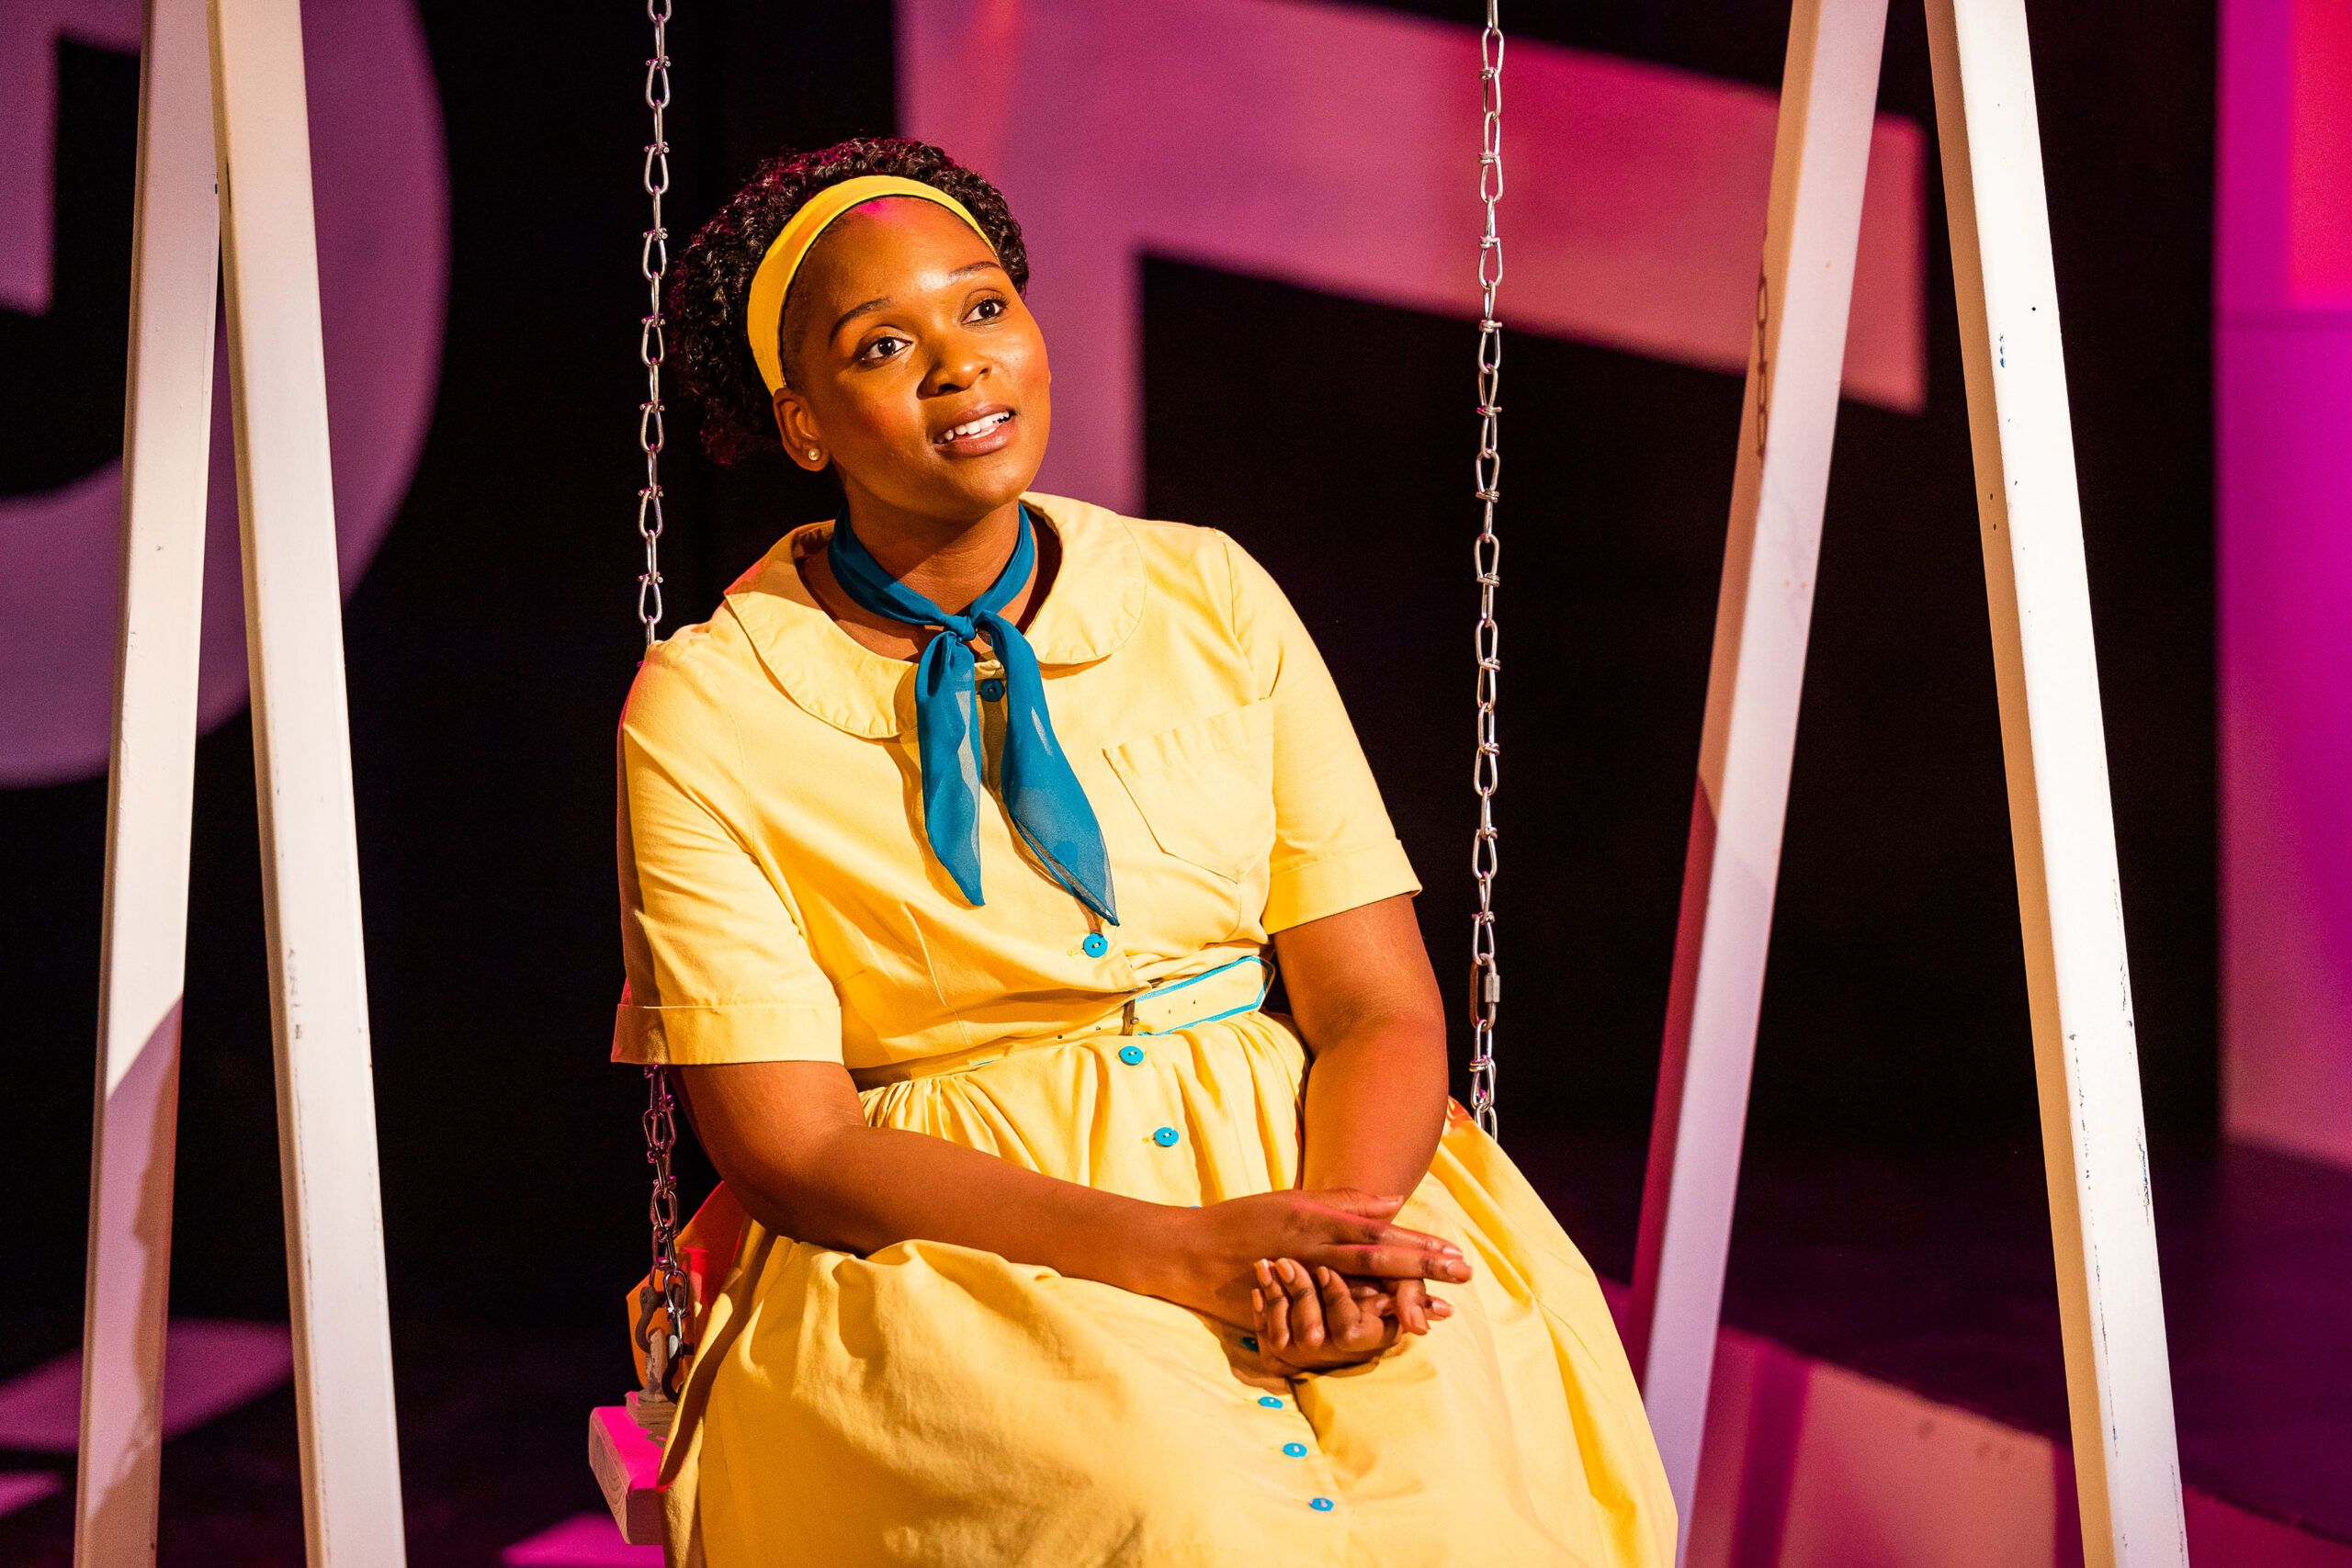 """Jasmine M. Rush in """"Queens Girl in the World"""" at Central Square Theater. (Courtesy Nile Scott Studios)"""